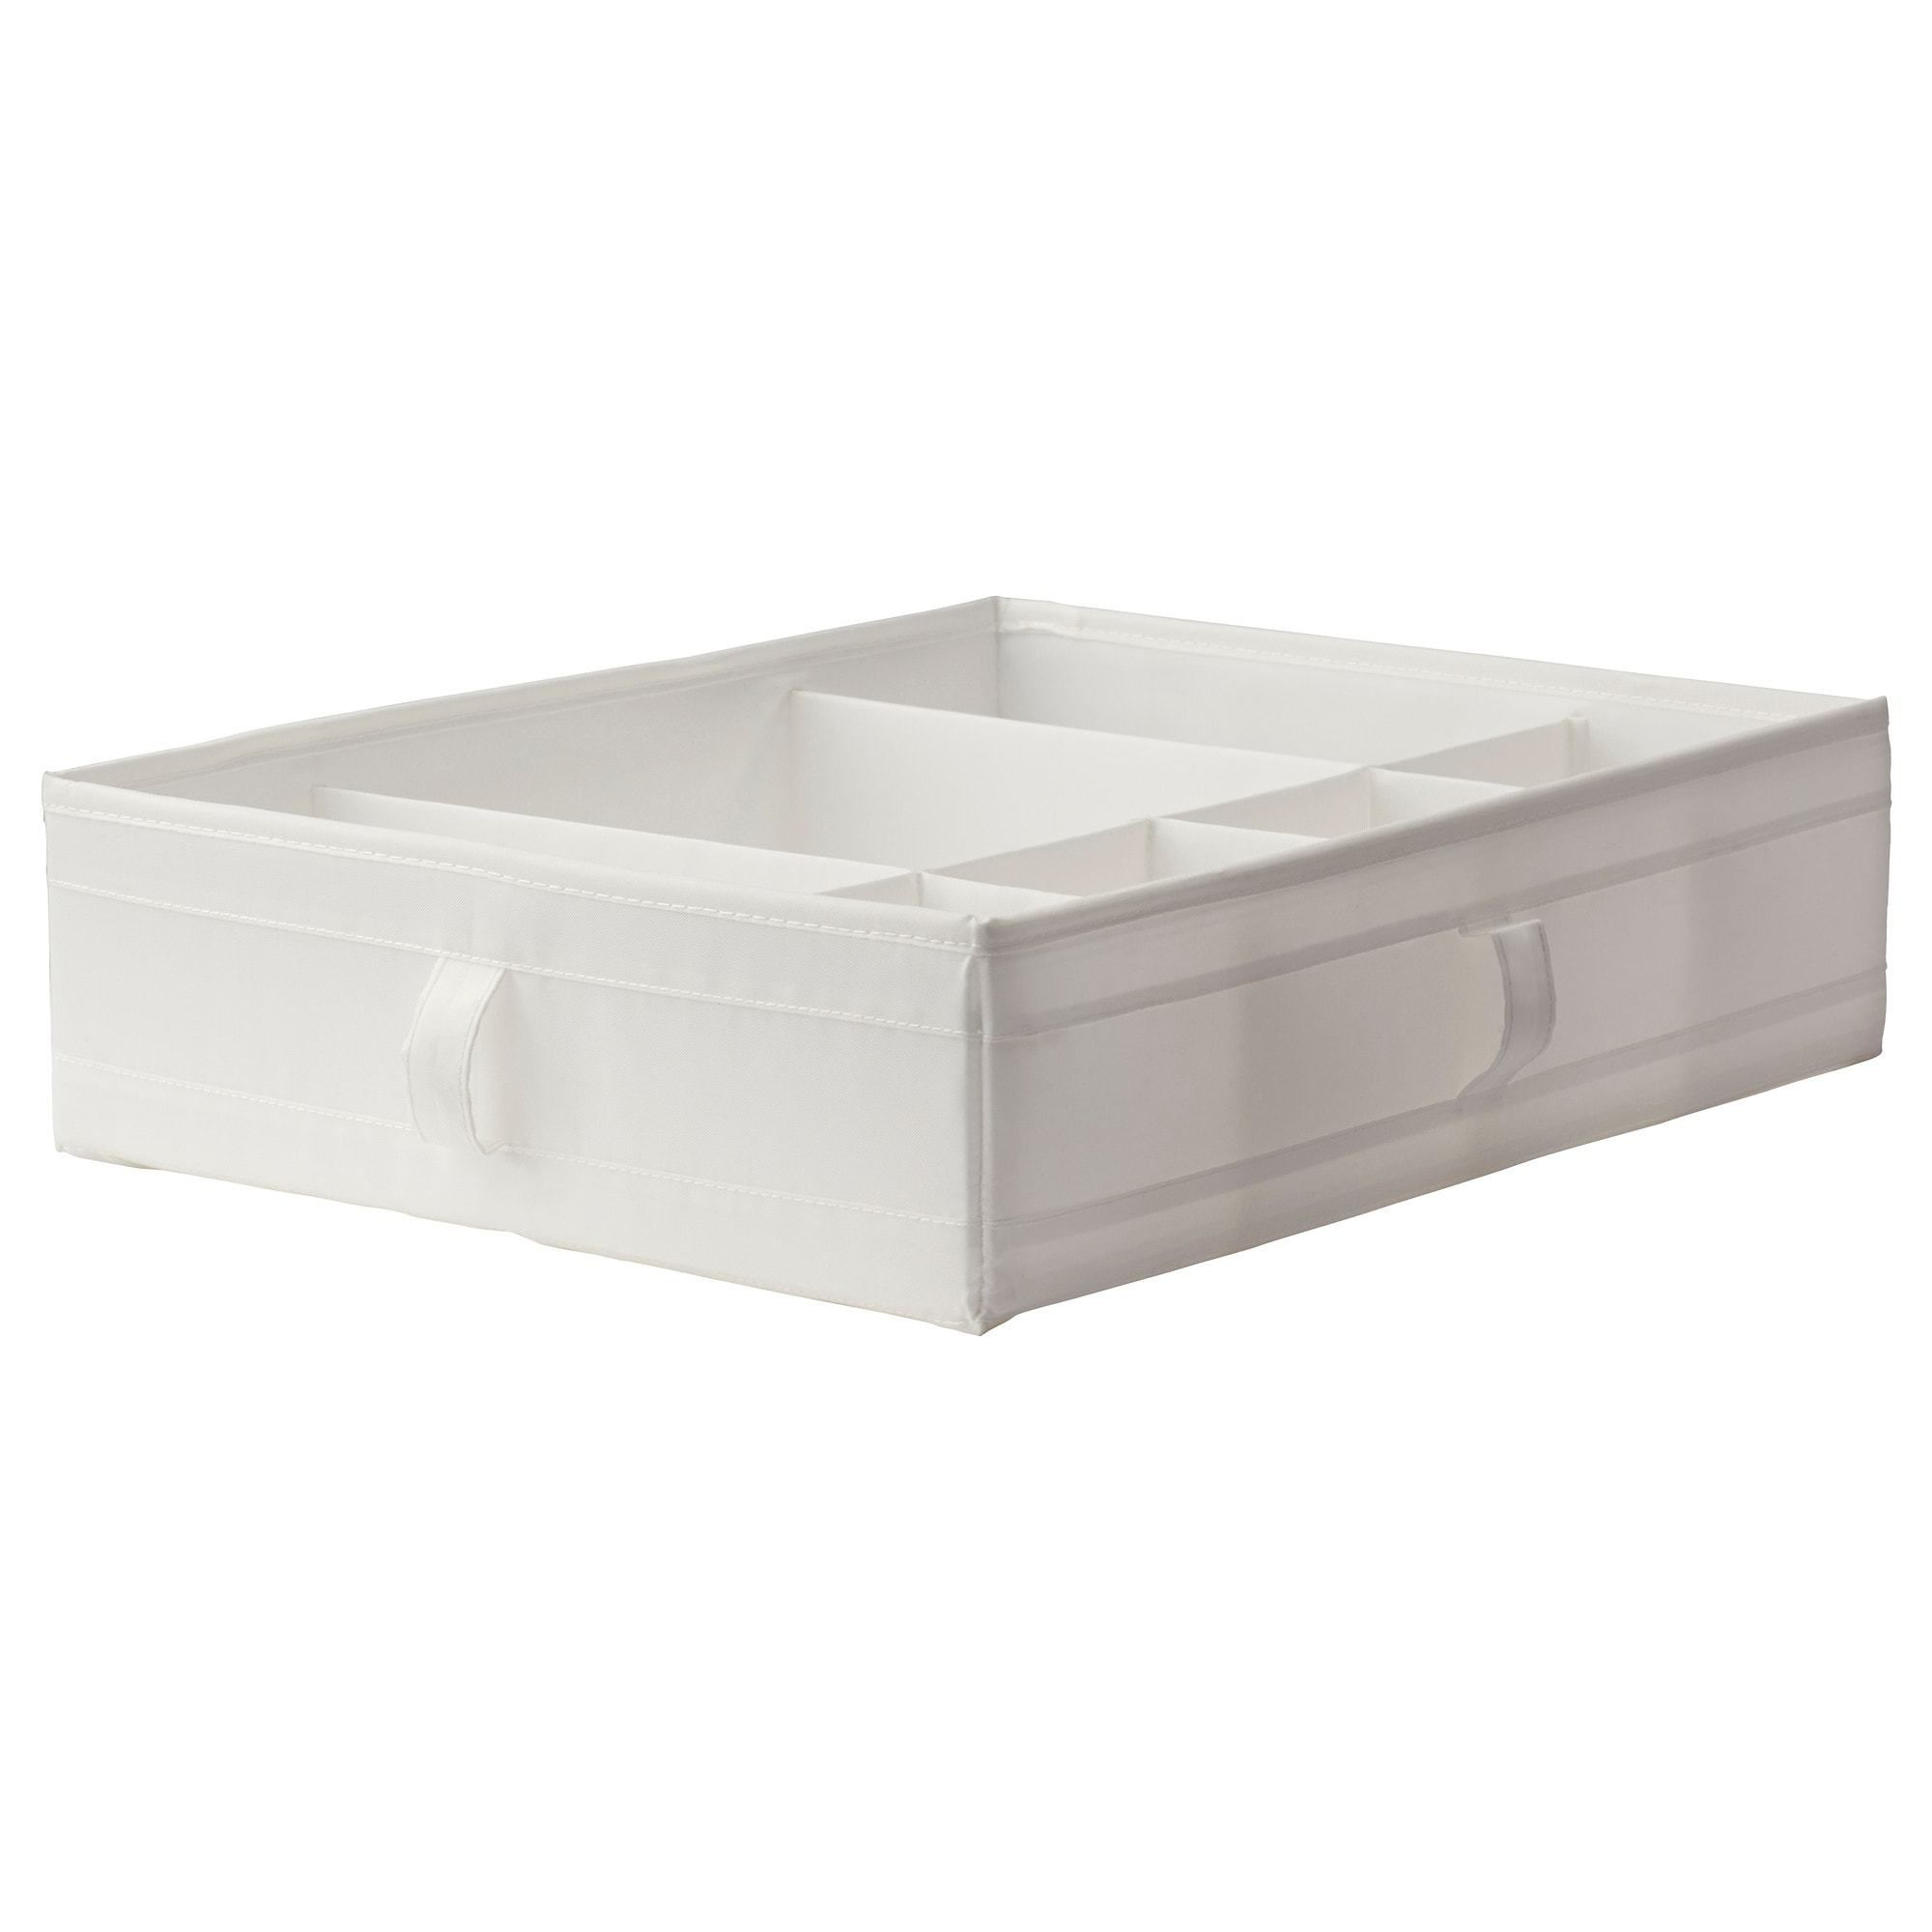 Skubb Compartment Box—IKEA bedroom storage